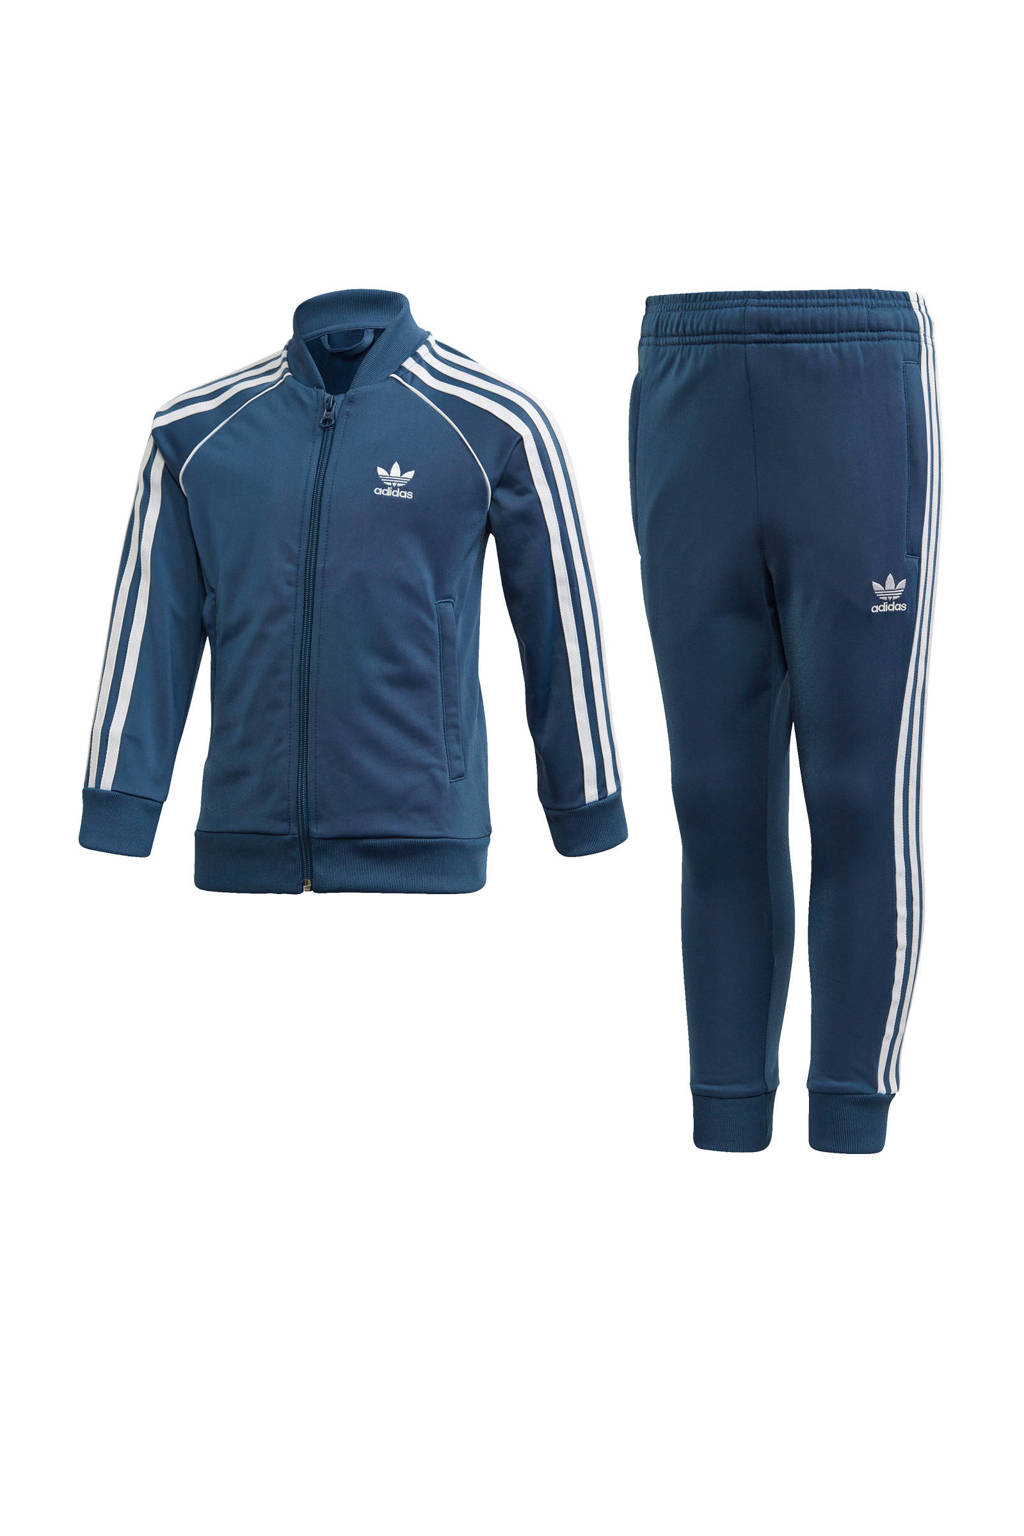 adidas Originals   trainingspak blauw, Blauw